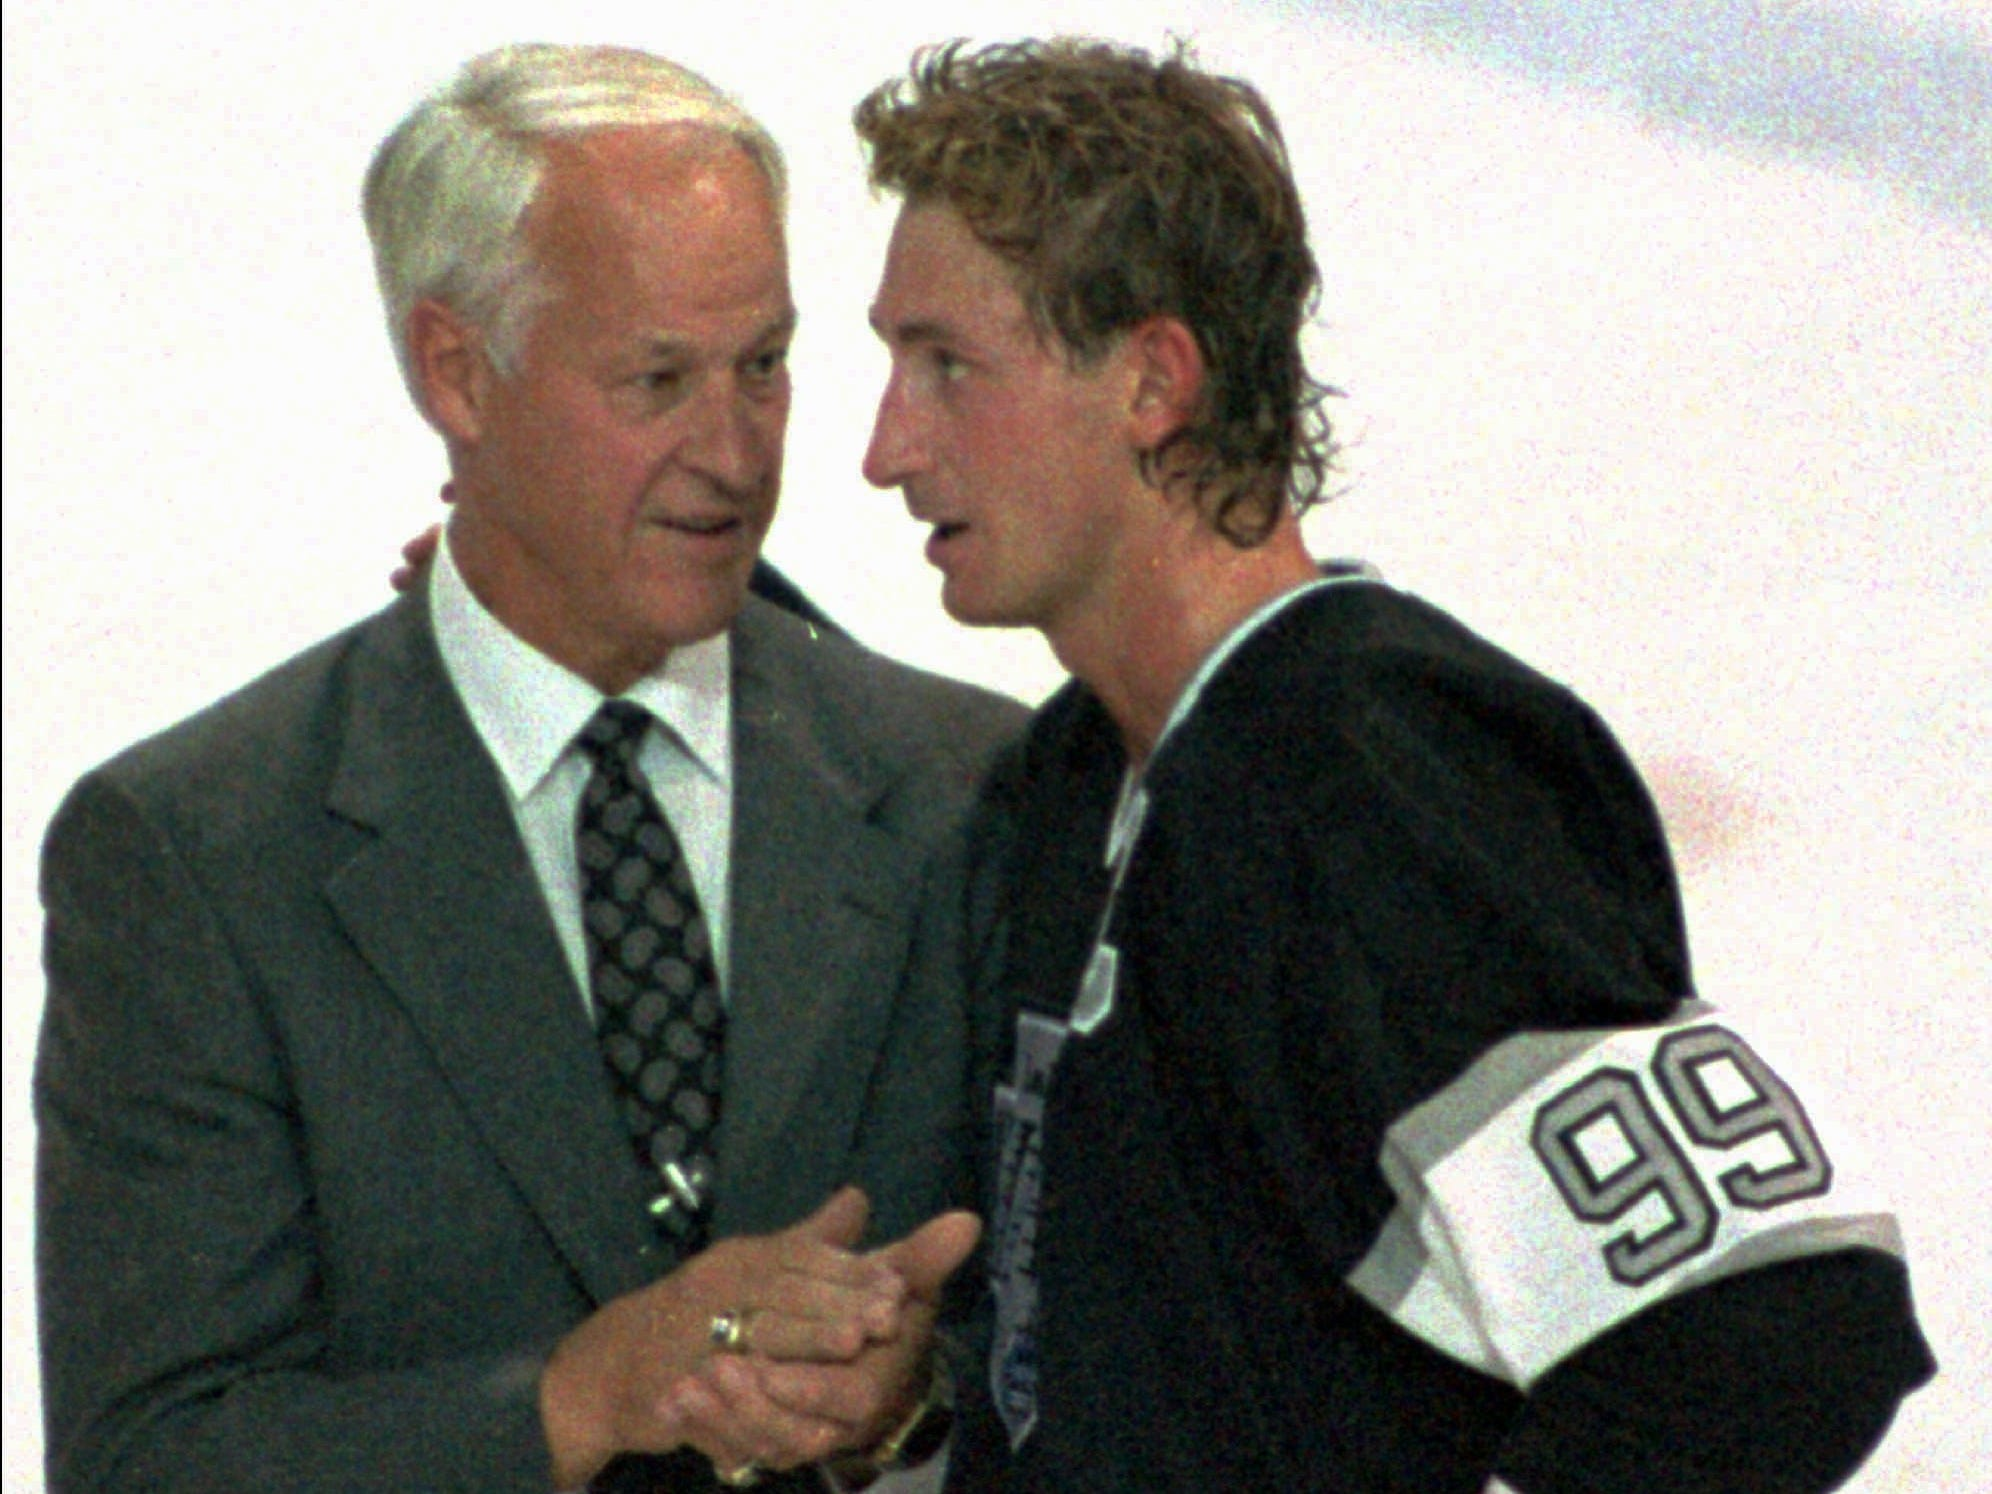 On Oct. 15, 1989, Wayne Gretzky broke Gordie Howe's points record during a game in Edmonton.